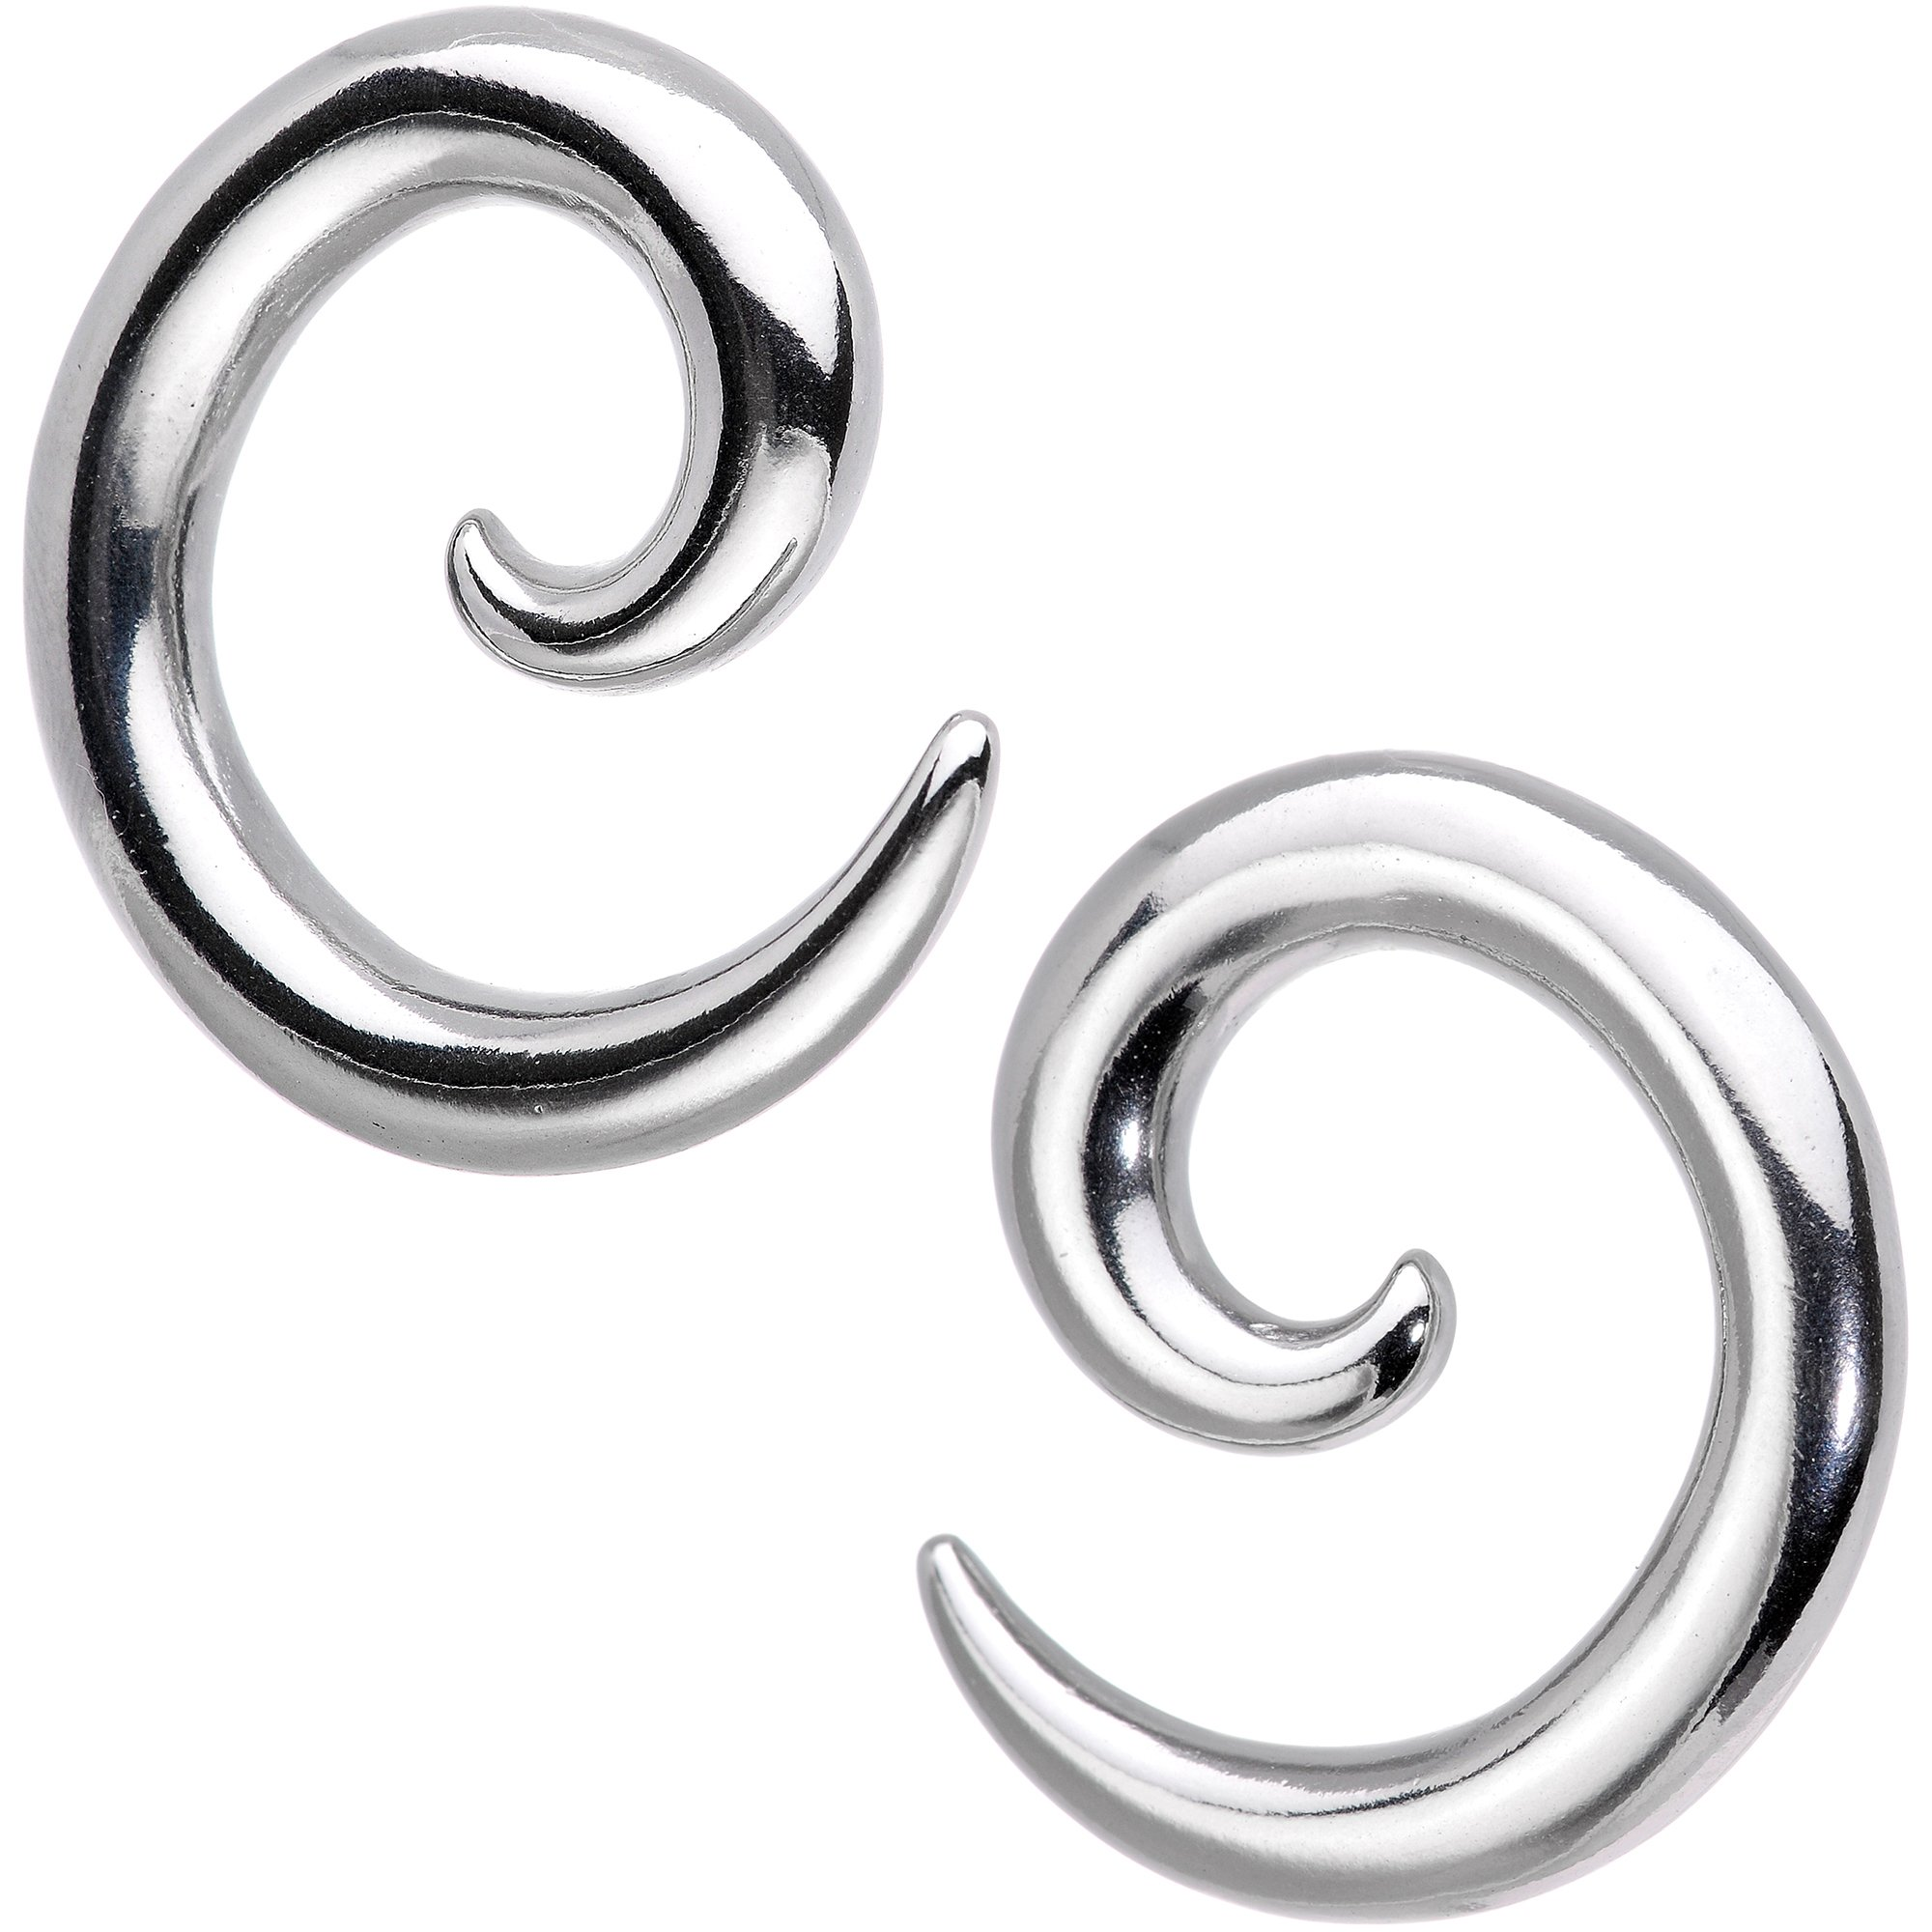 Body Candy 316L Stainless Steel Curved Spiral Taper Set 2 Gauge